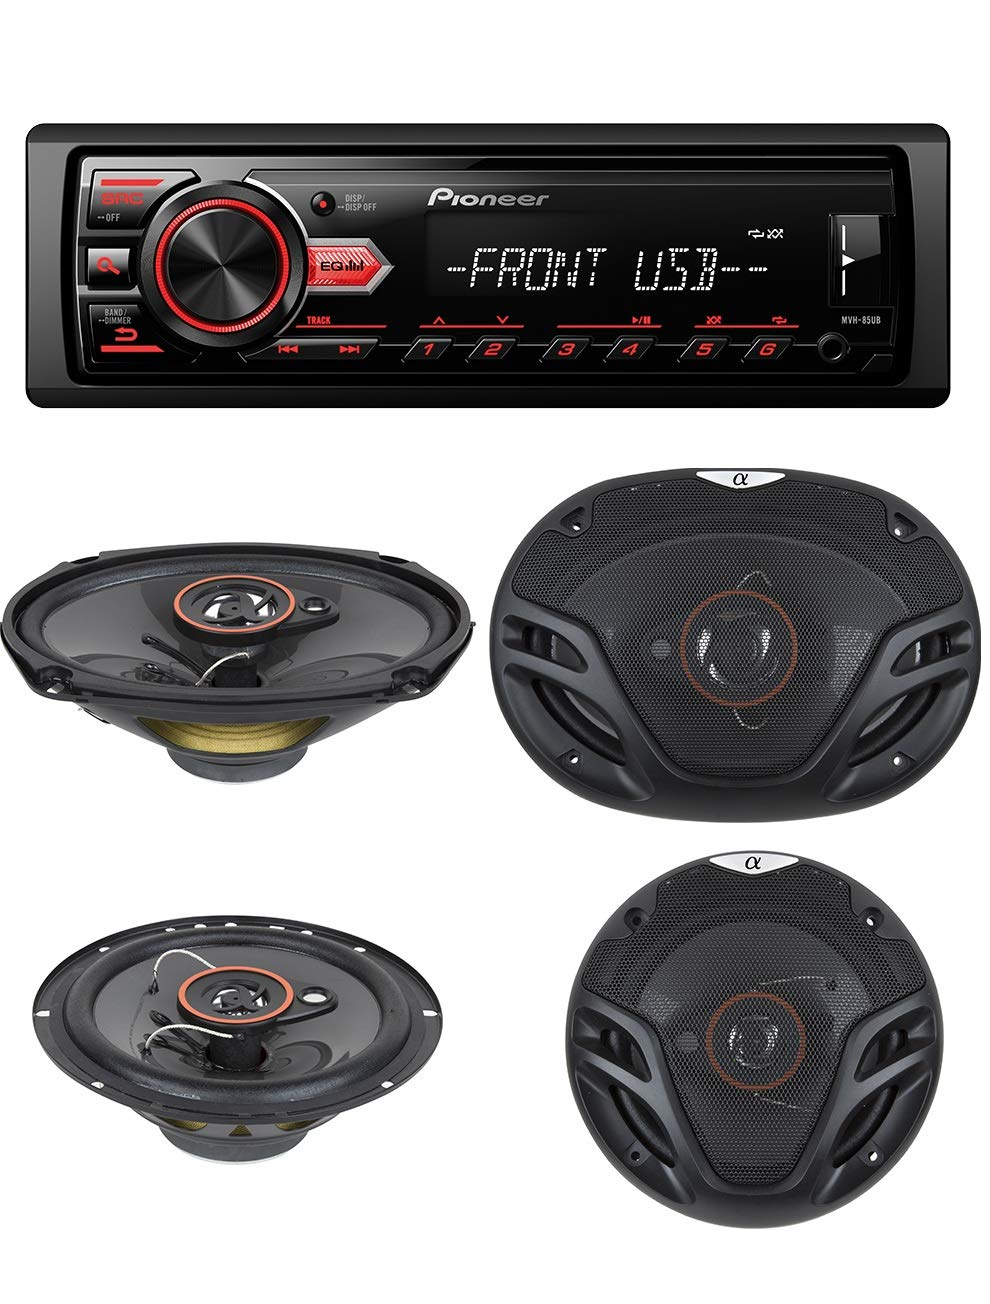 """Pioneer In-Dash Single DIN Digital Media Player Front USB Auxiliary MP3 AM//FM Radio Android phone app Control Car Stereo Receiver with pair of 6.5/"""" and pair of 6x9/"""" Speakers Pioneer Electronics USA Inc Advanced Remote Control"""